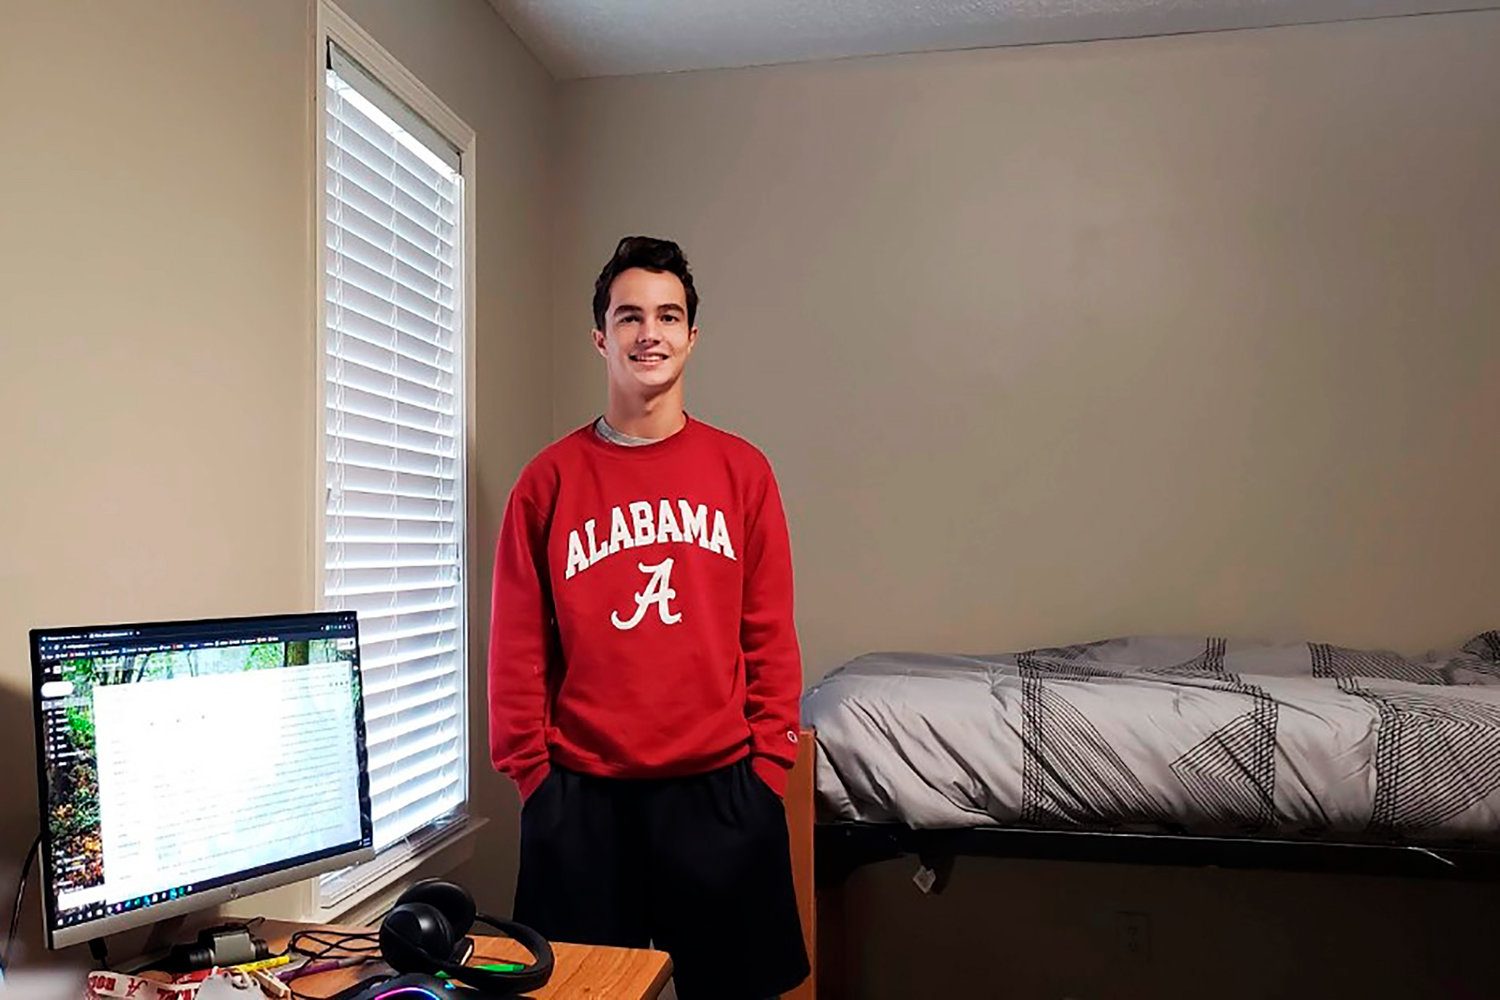 In this Sept. 1, 2020, photo provided by Zachary Bourg, he poses for a photo in an isolation unit at the University of Alabama in Tuscaloosa, Ala. Bourg lived there for 10 days after he tested positive for the virus.  (Zachary Bourg via AP)